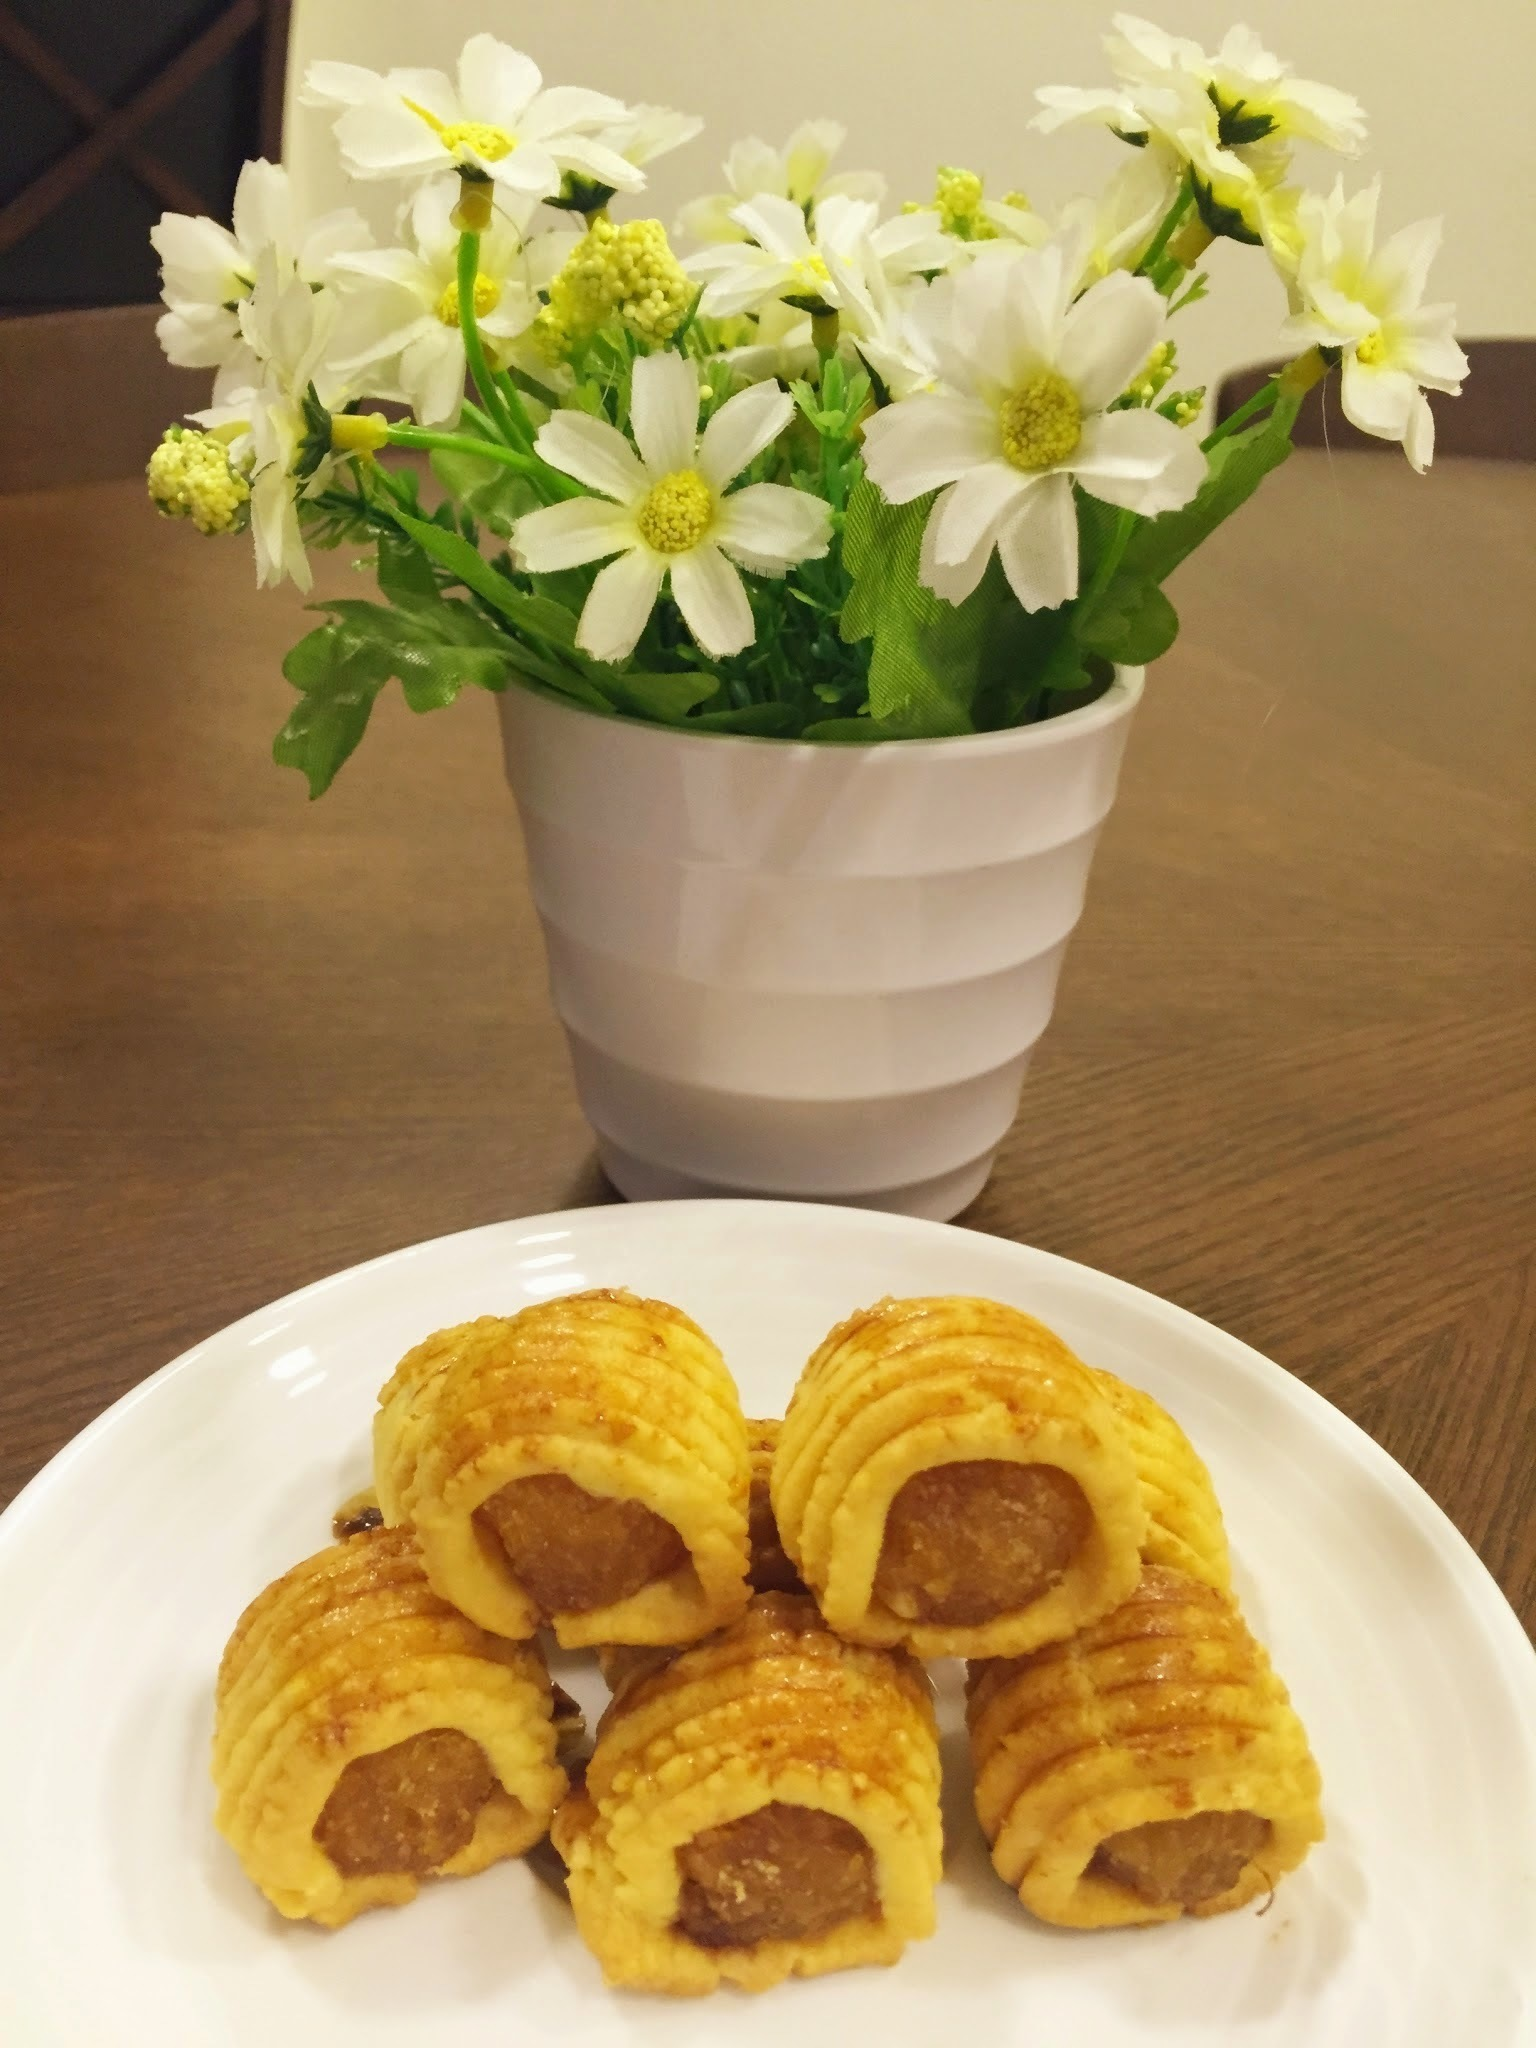 Cheesy pineapple tarts(芝士凤味黄金球)